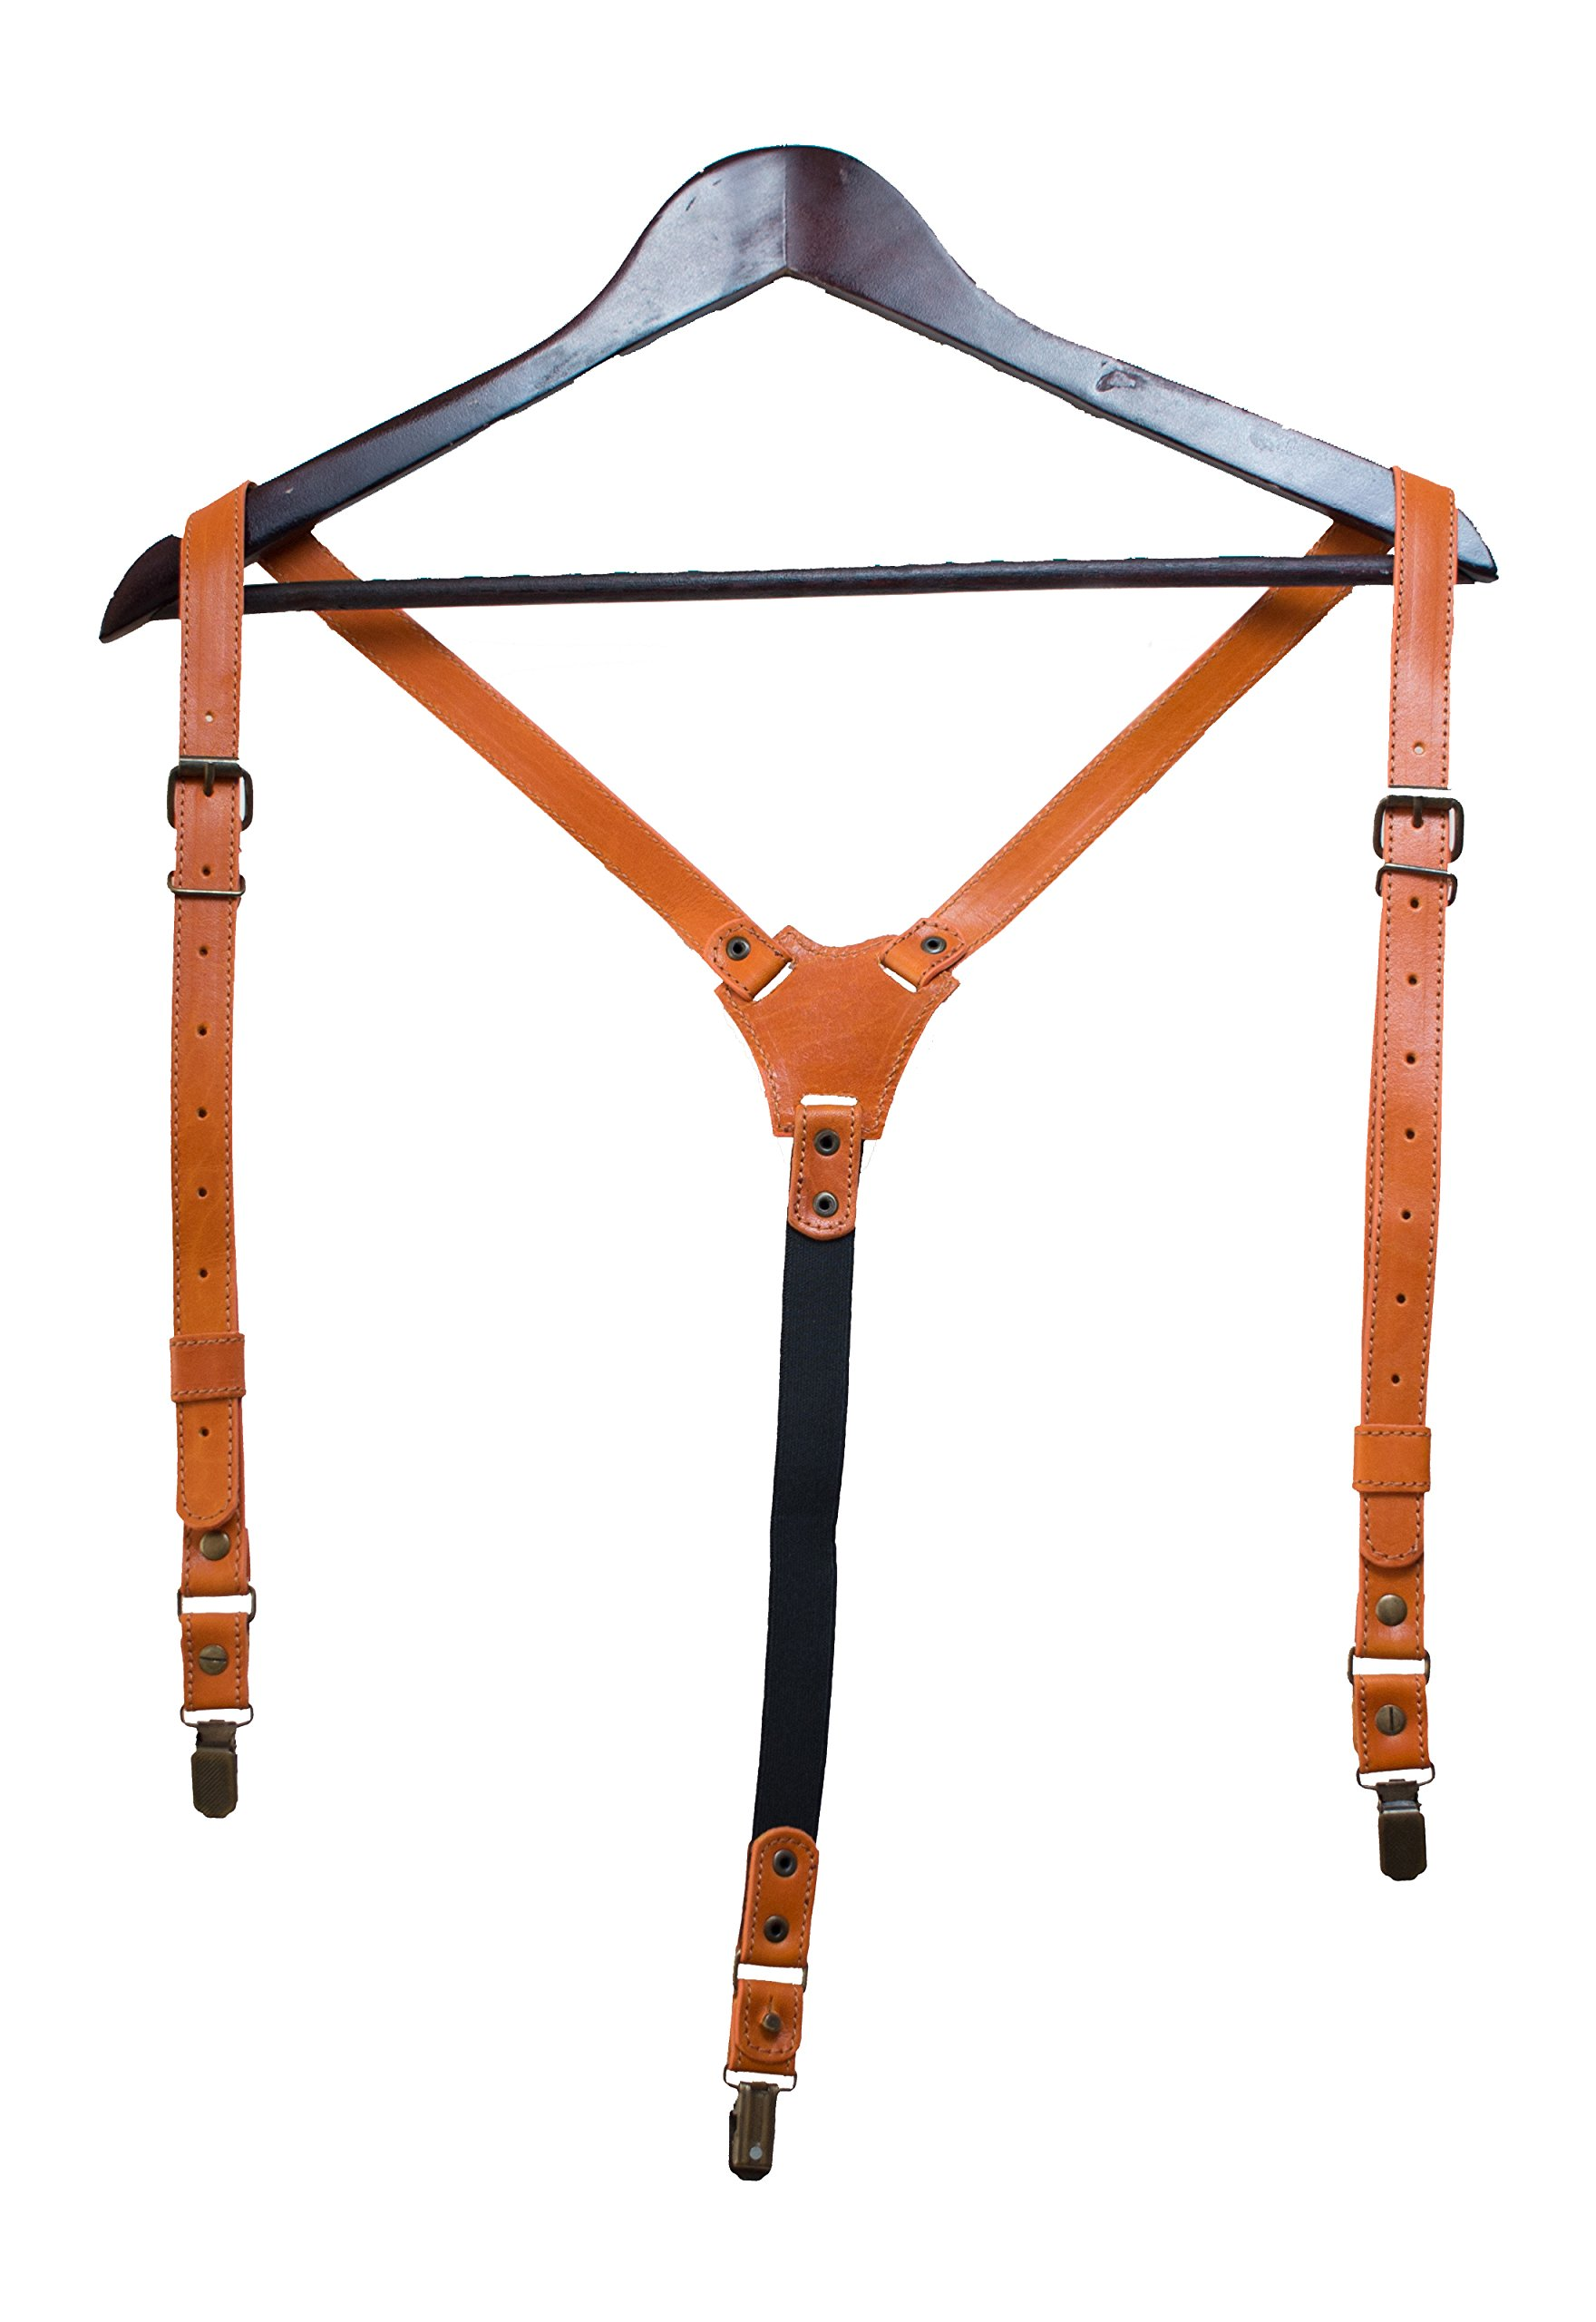 Leather suspenders prime, for men, 3 in 1 clips, snap hooks and buttons / gift box / real leather (Tan)